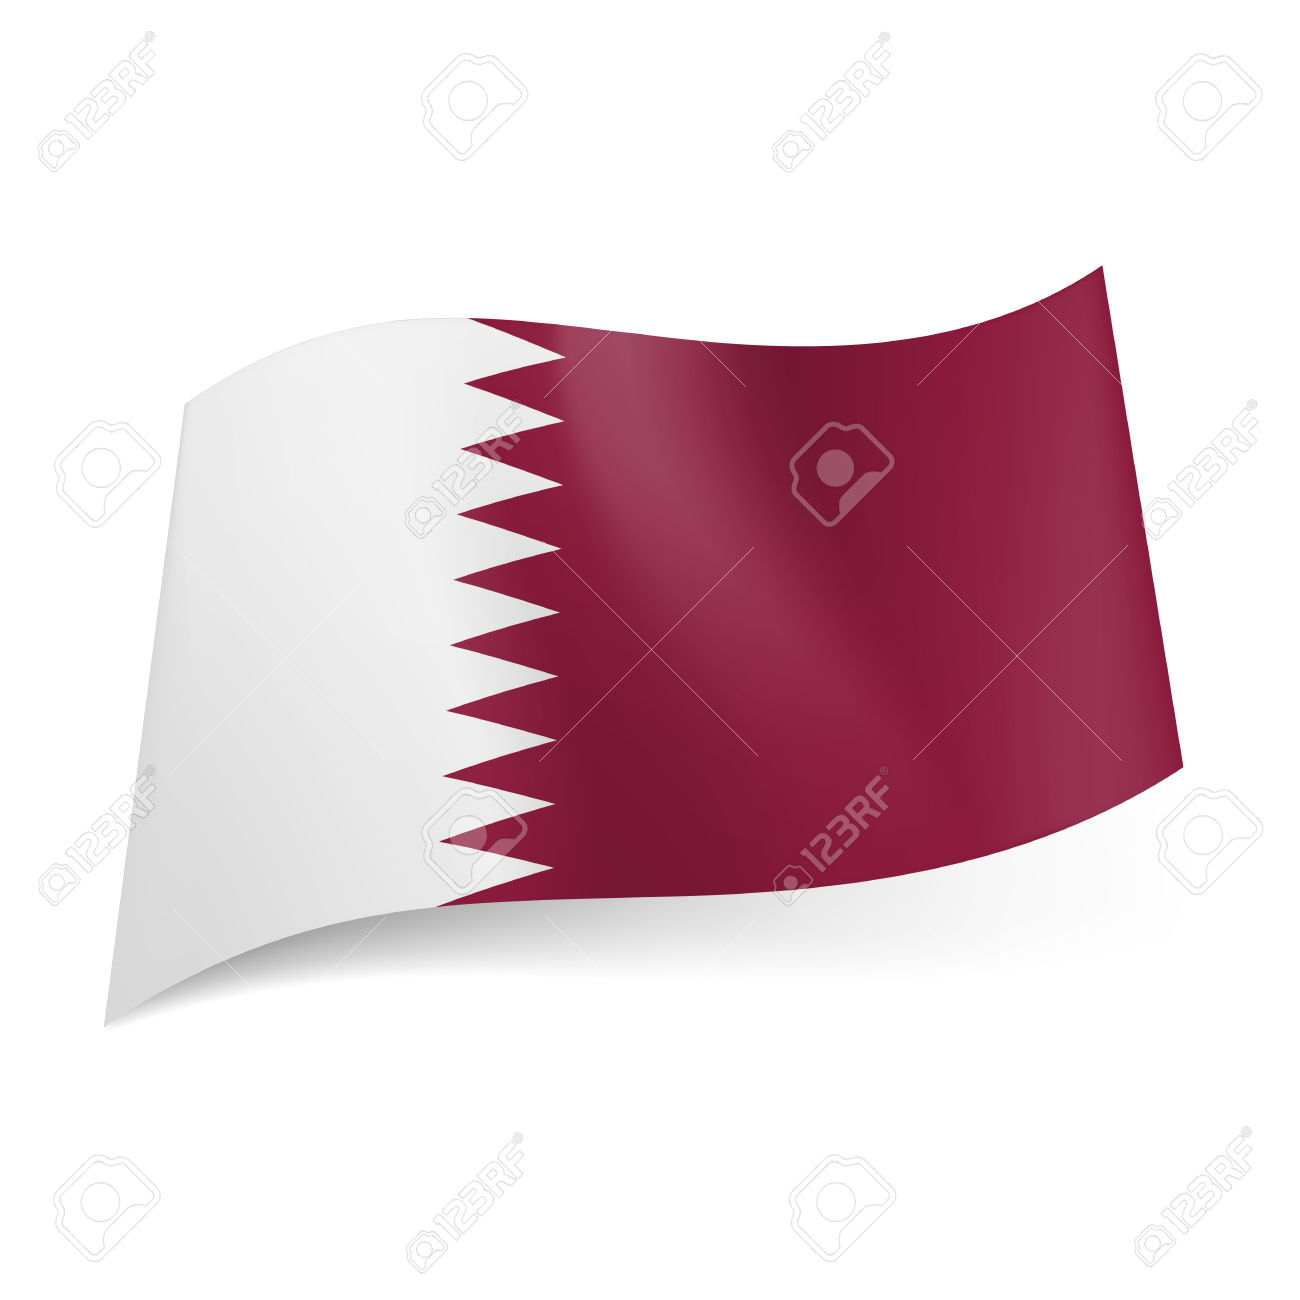 Free maroon tribe flag clipart.